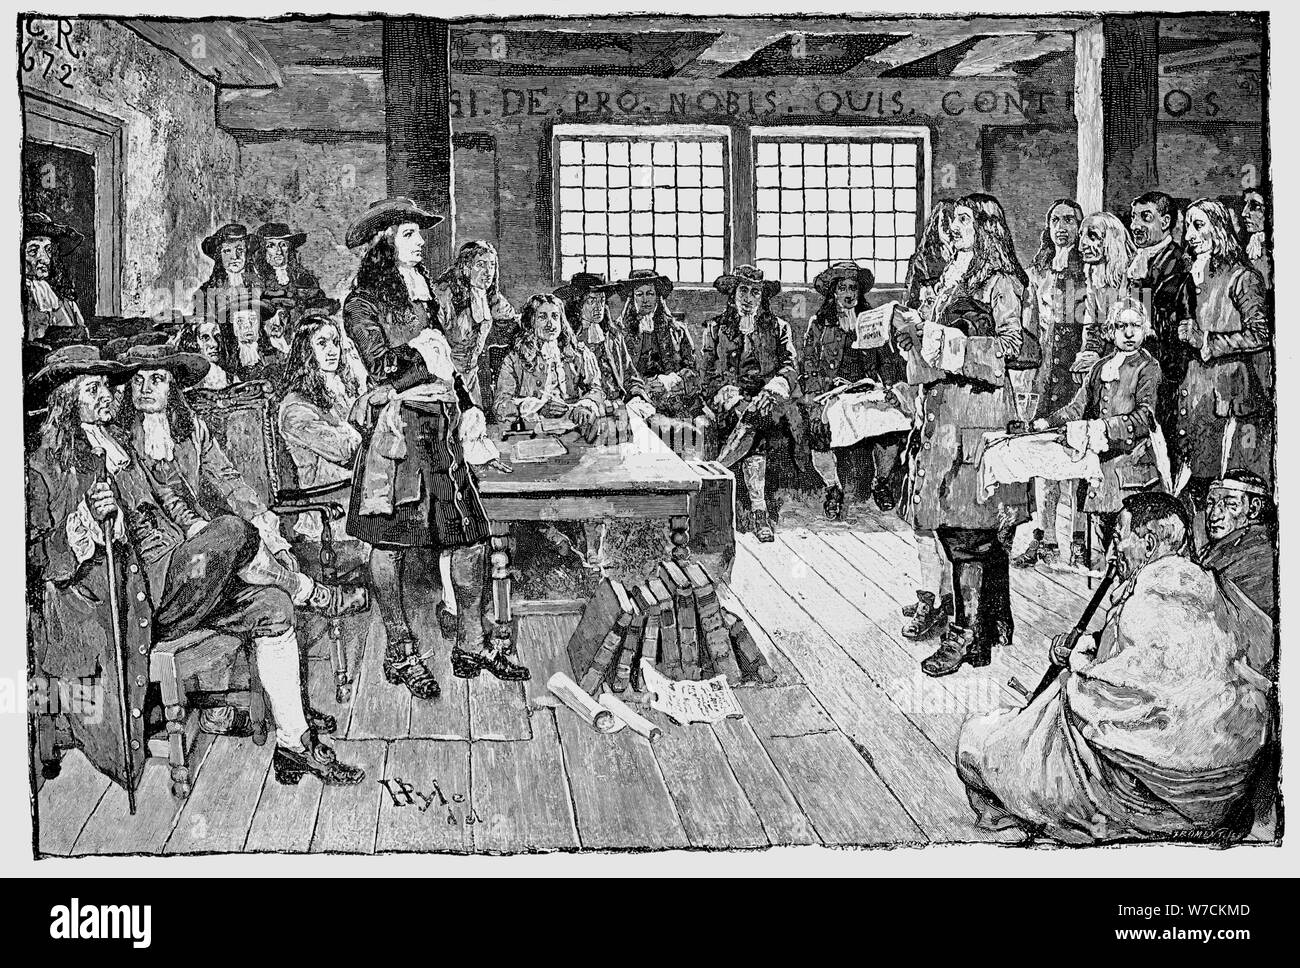 William Penn (1644-1718) English Quaker and colonialist, founder of Pennsylvania, 1682. Artist: Unknown Stock Photo